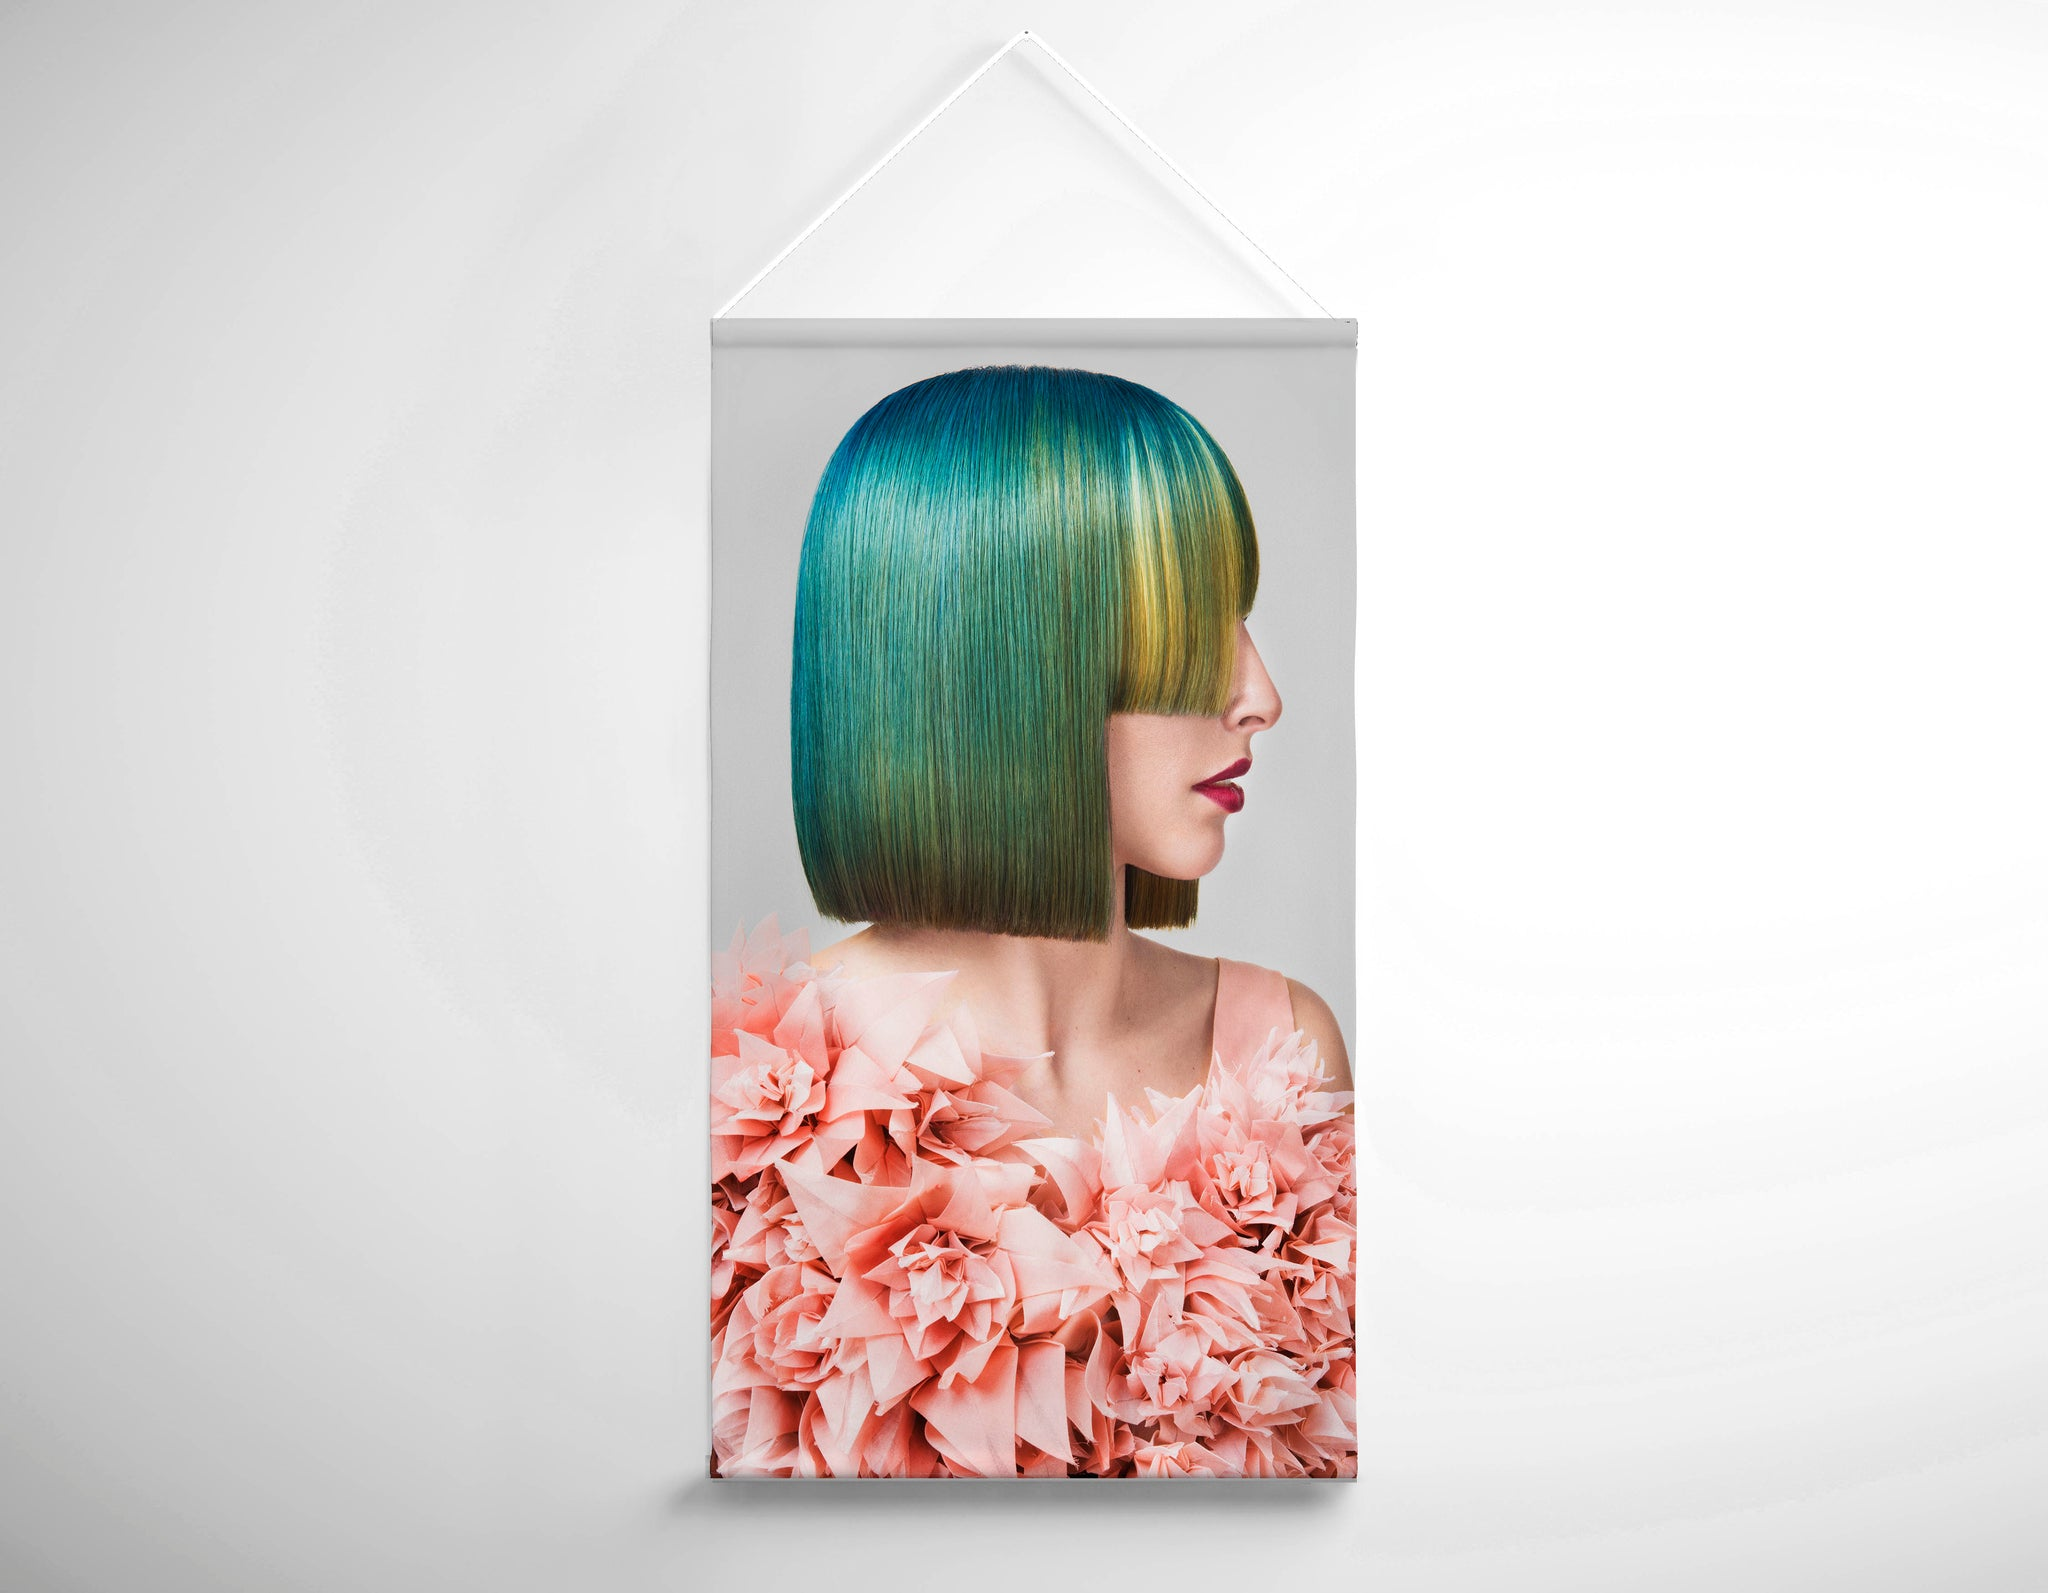 Textile Salon Banner - Woman with Green Hair in Peach Floral Textured Dress